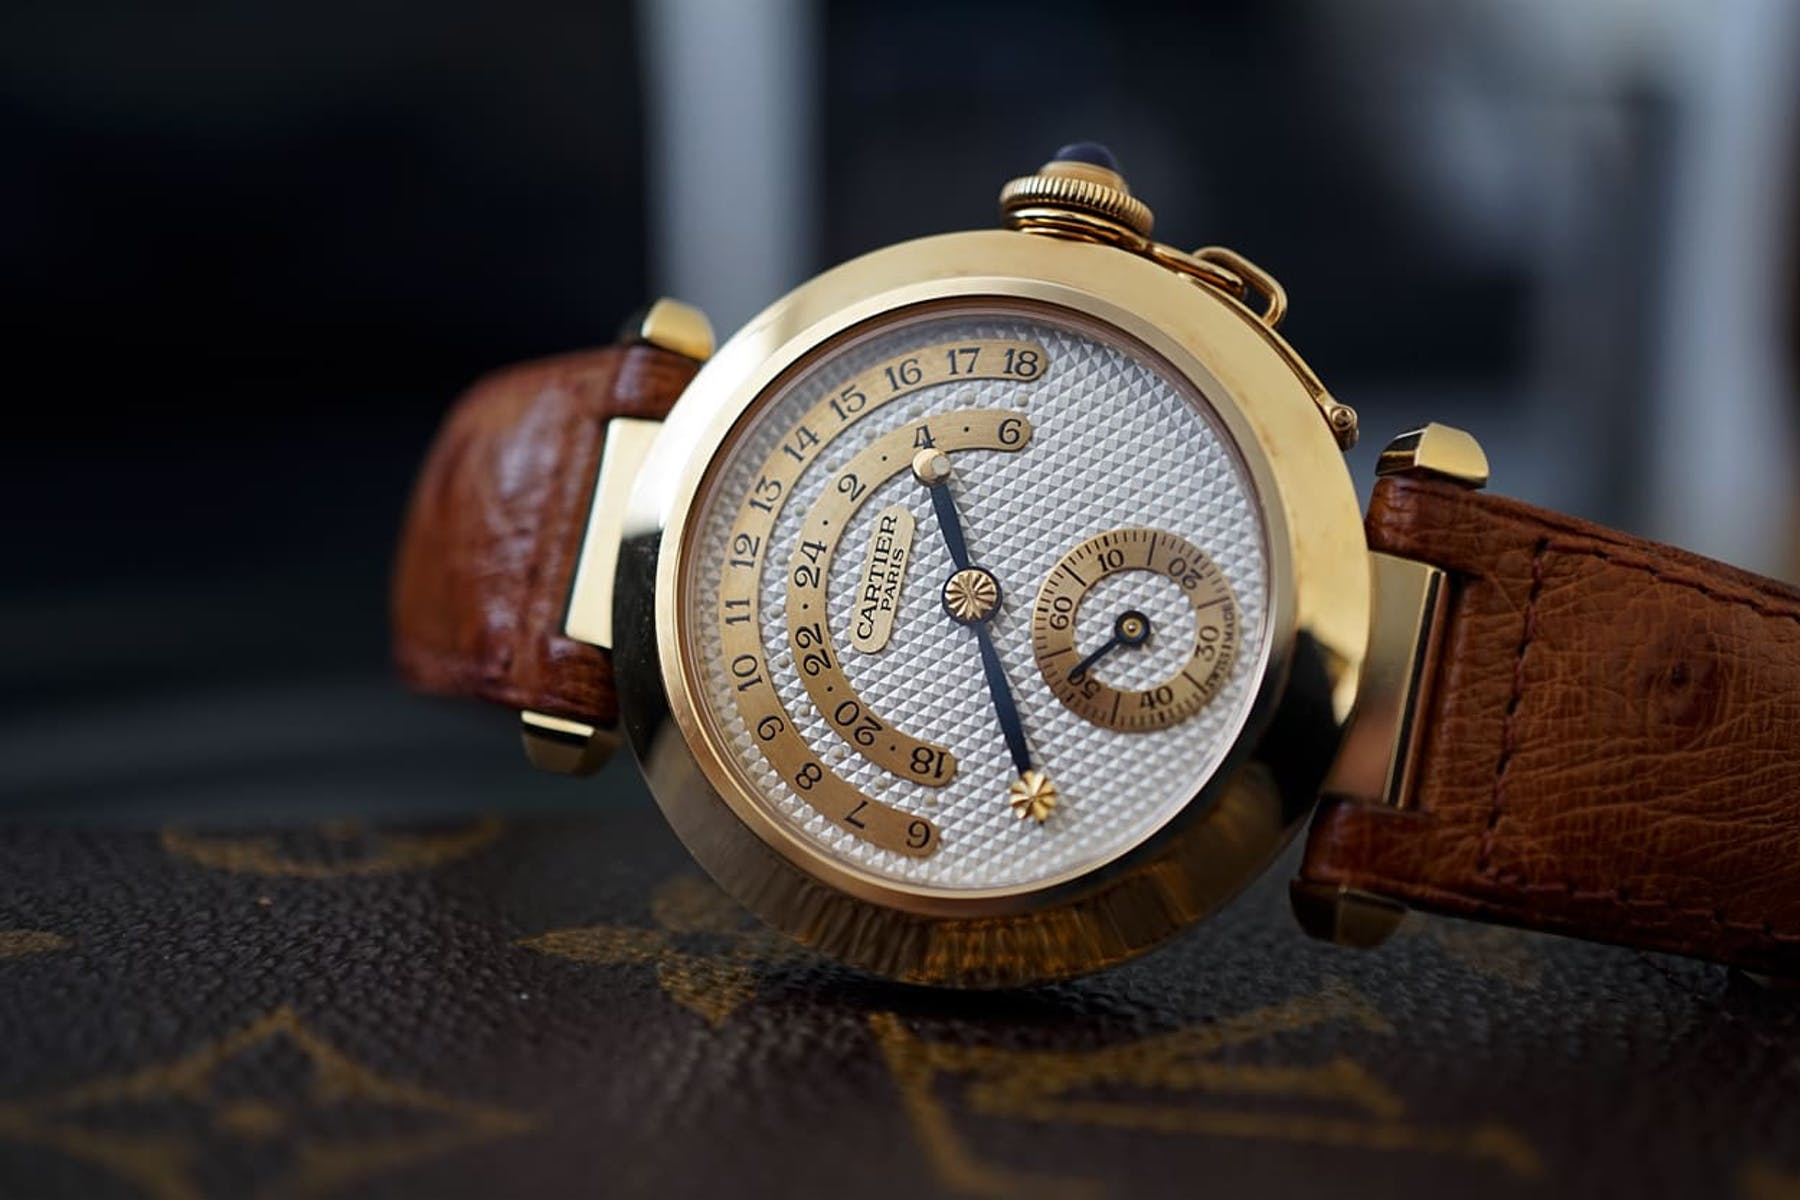 Cartier day and night